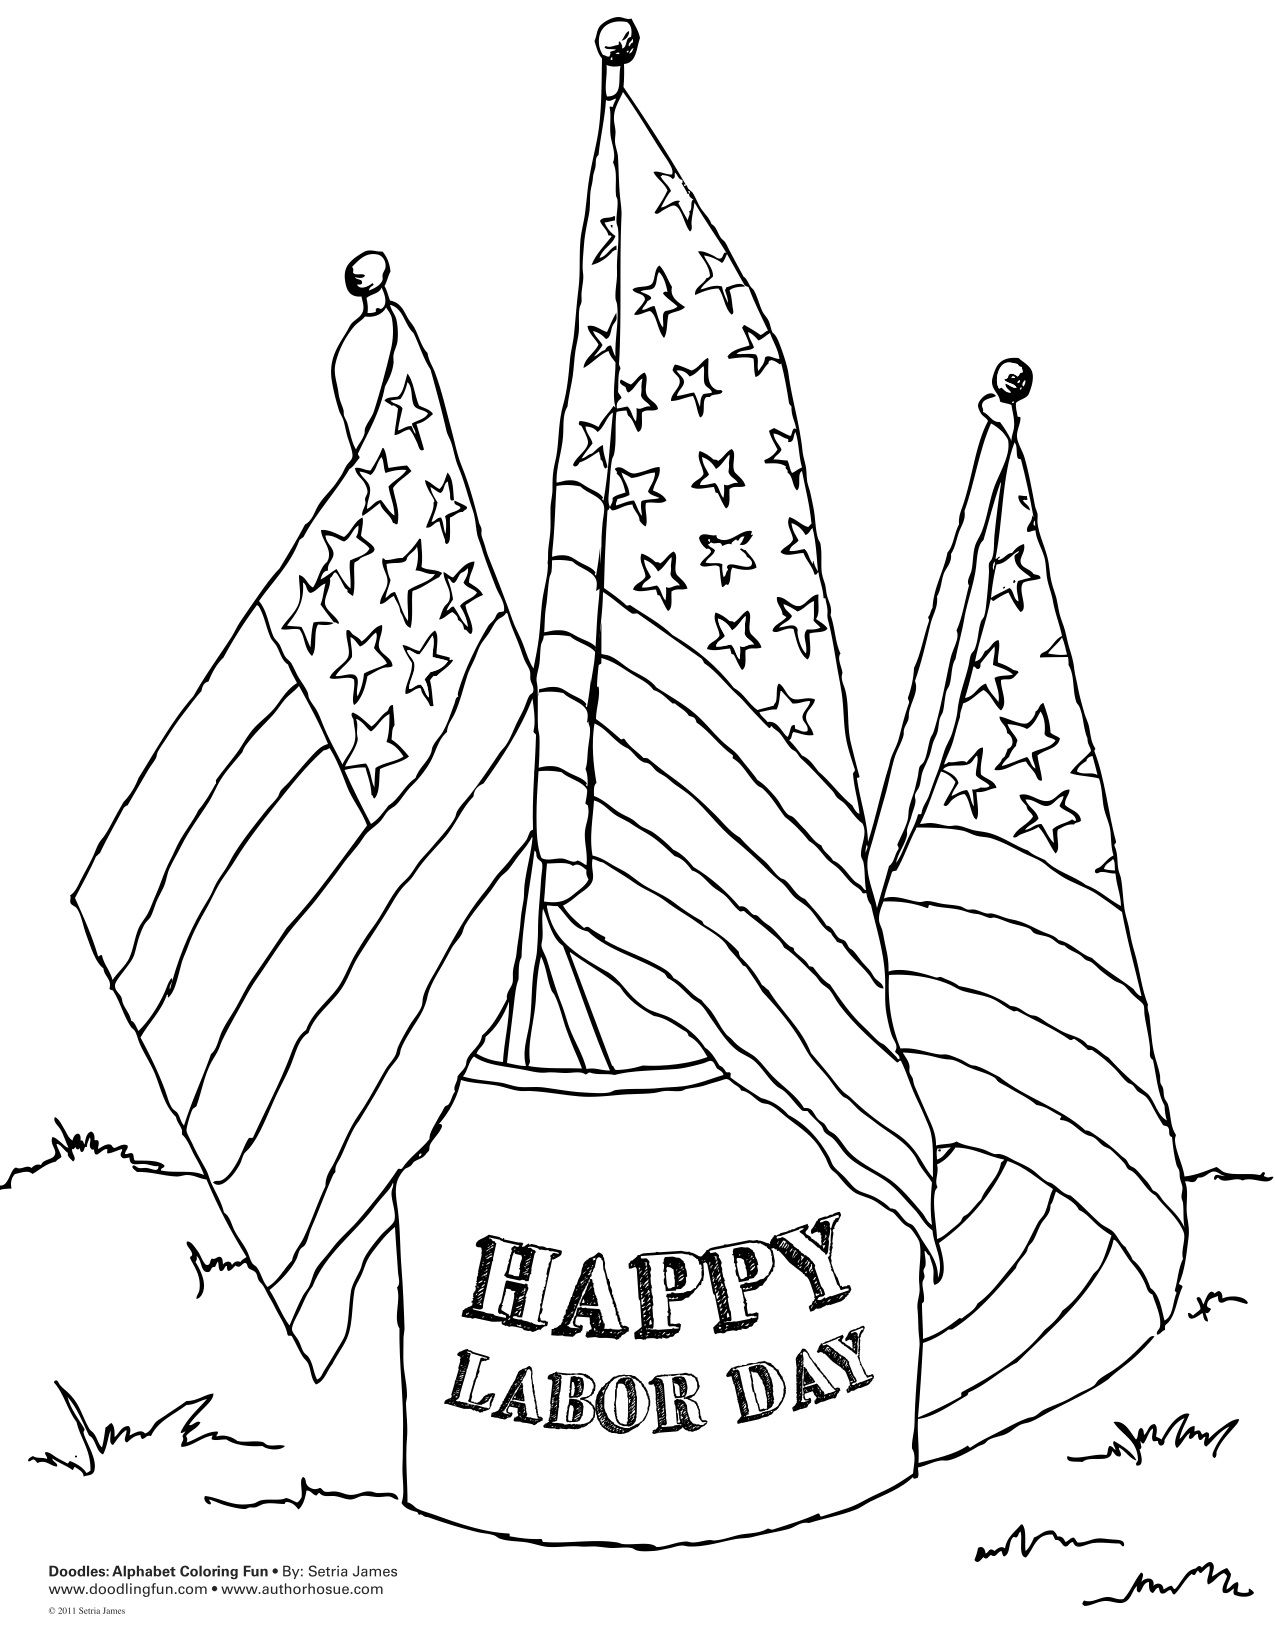 labor day coloring pages - Labor Day Coloring Pages Kids